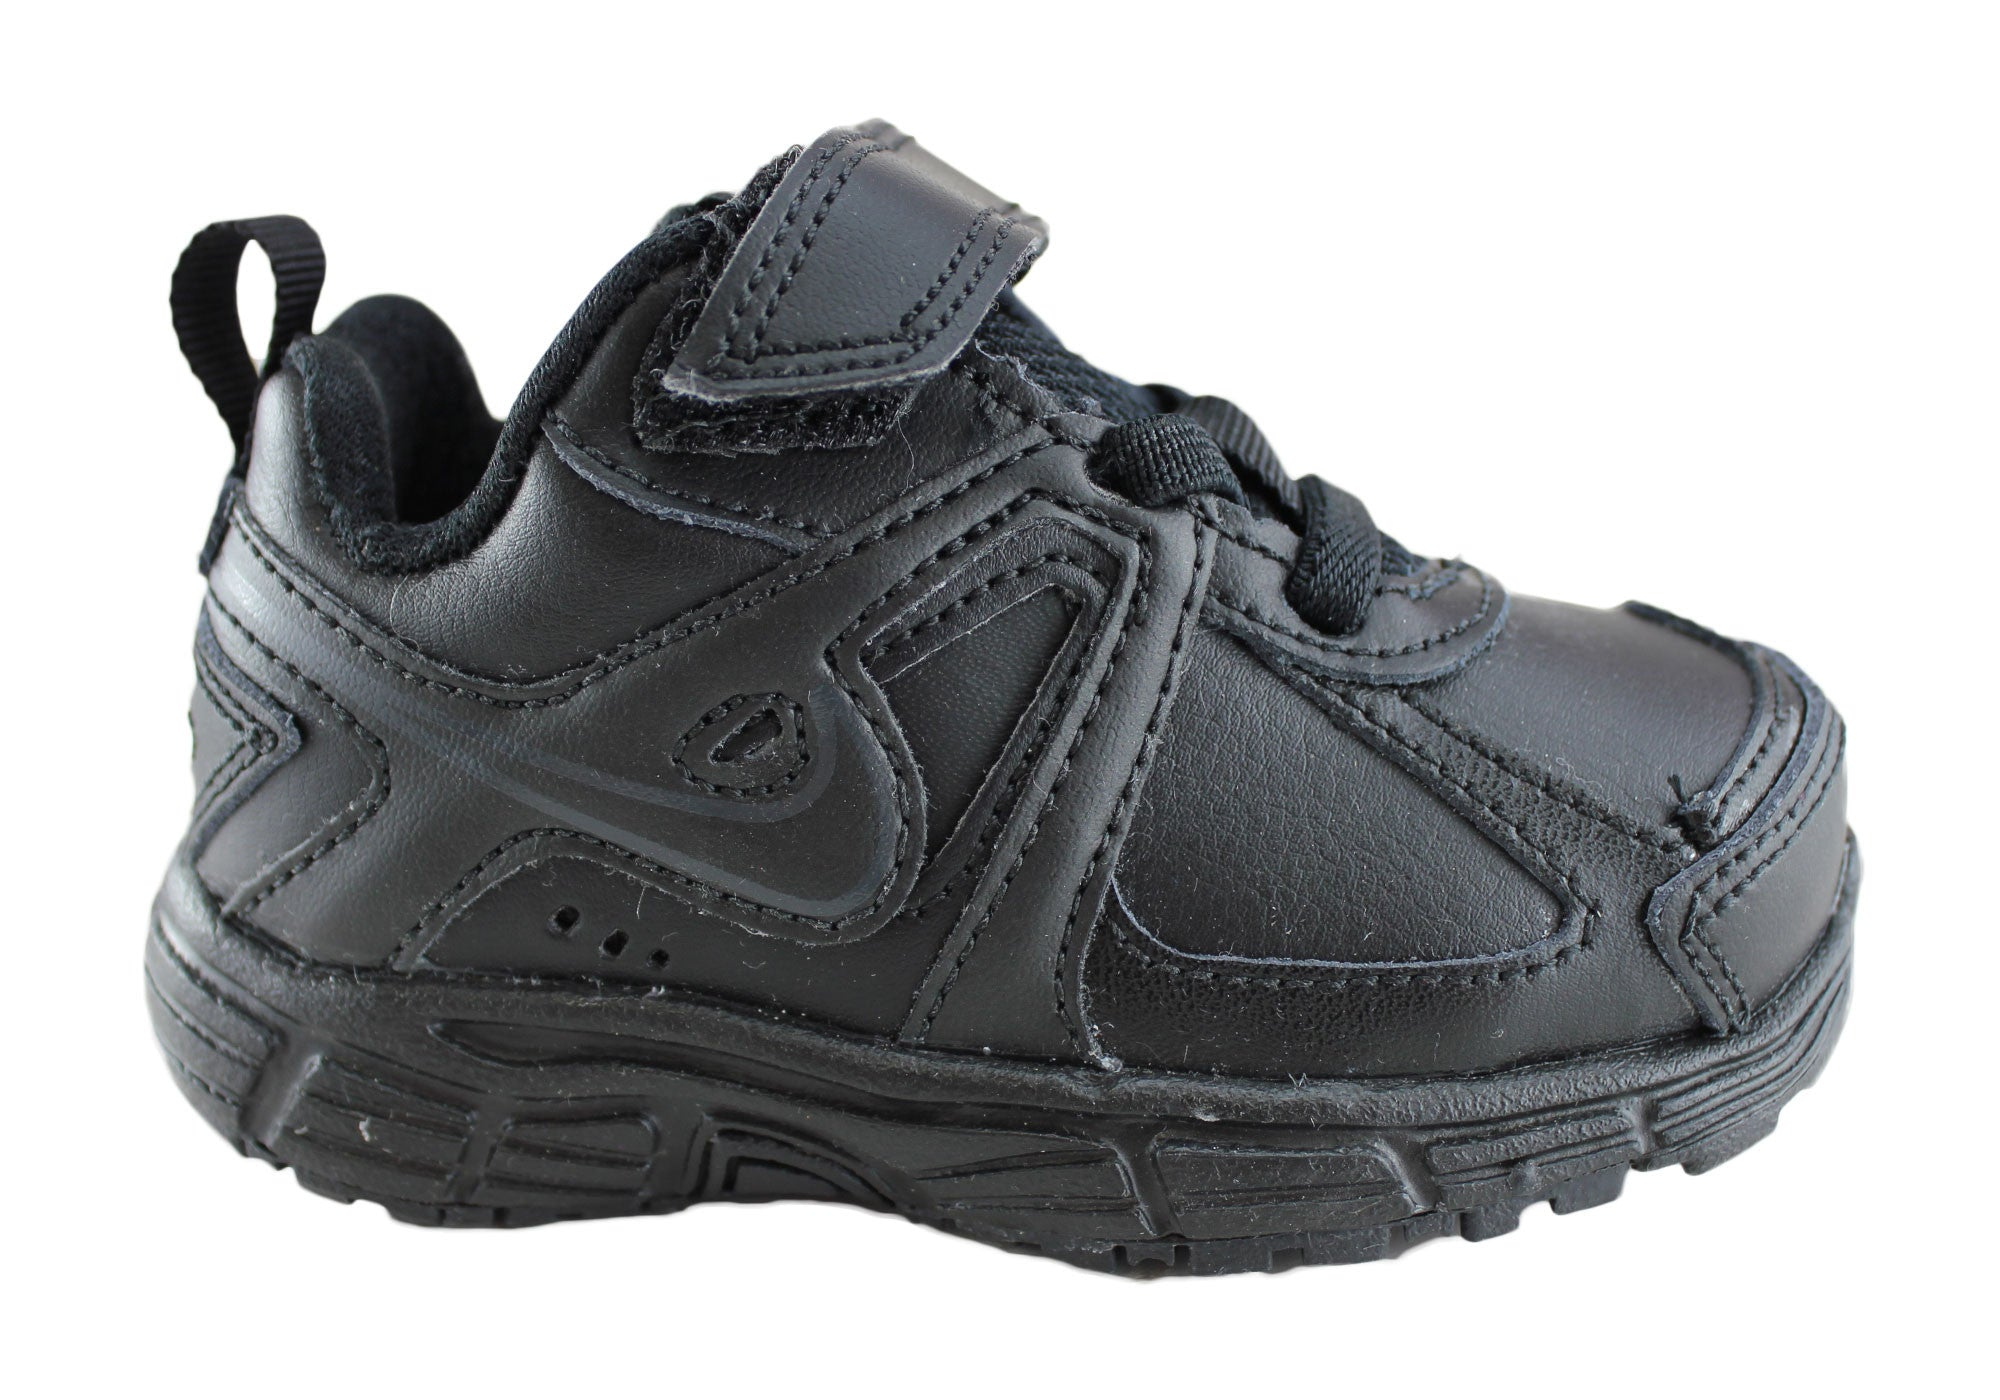 Nike Dart 9 Leather Toddler Baby Shoes